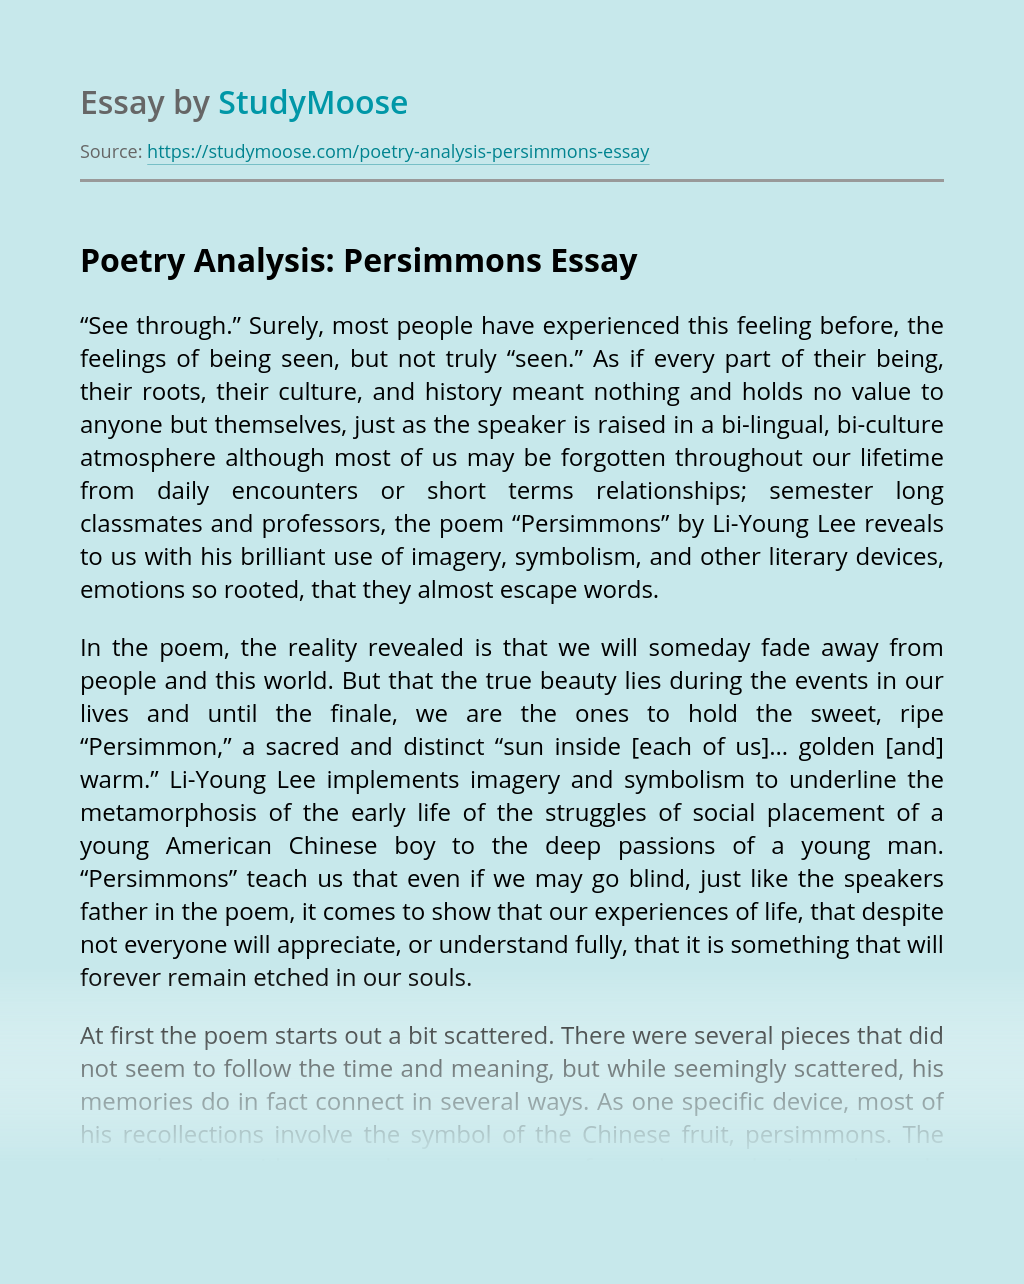 Poetry Analysis: Persimmons